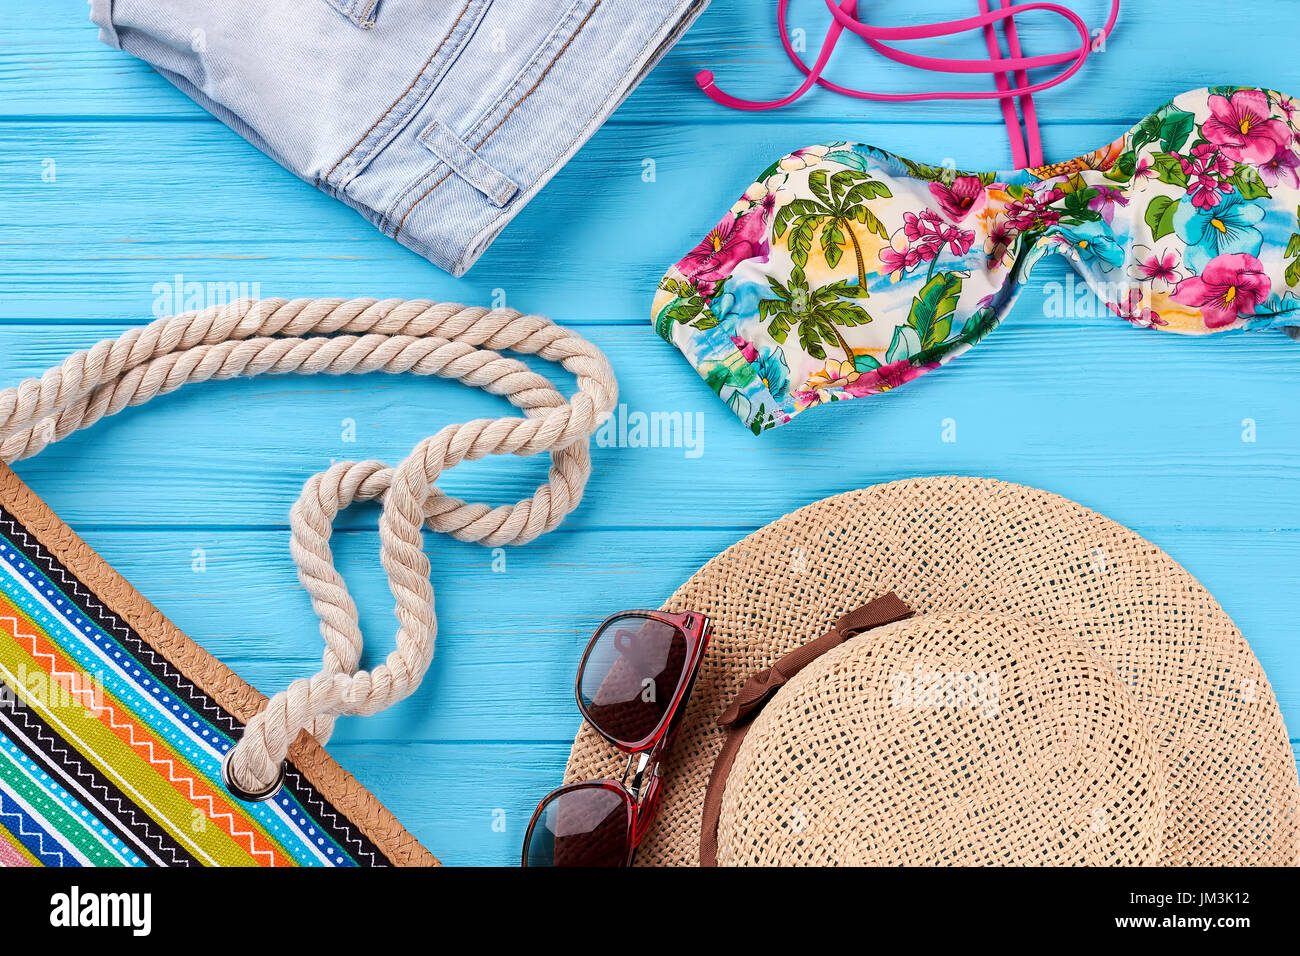 d3be43c68f7 Beach clothing close up. Woven hat